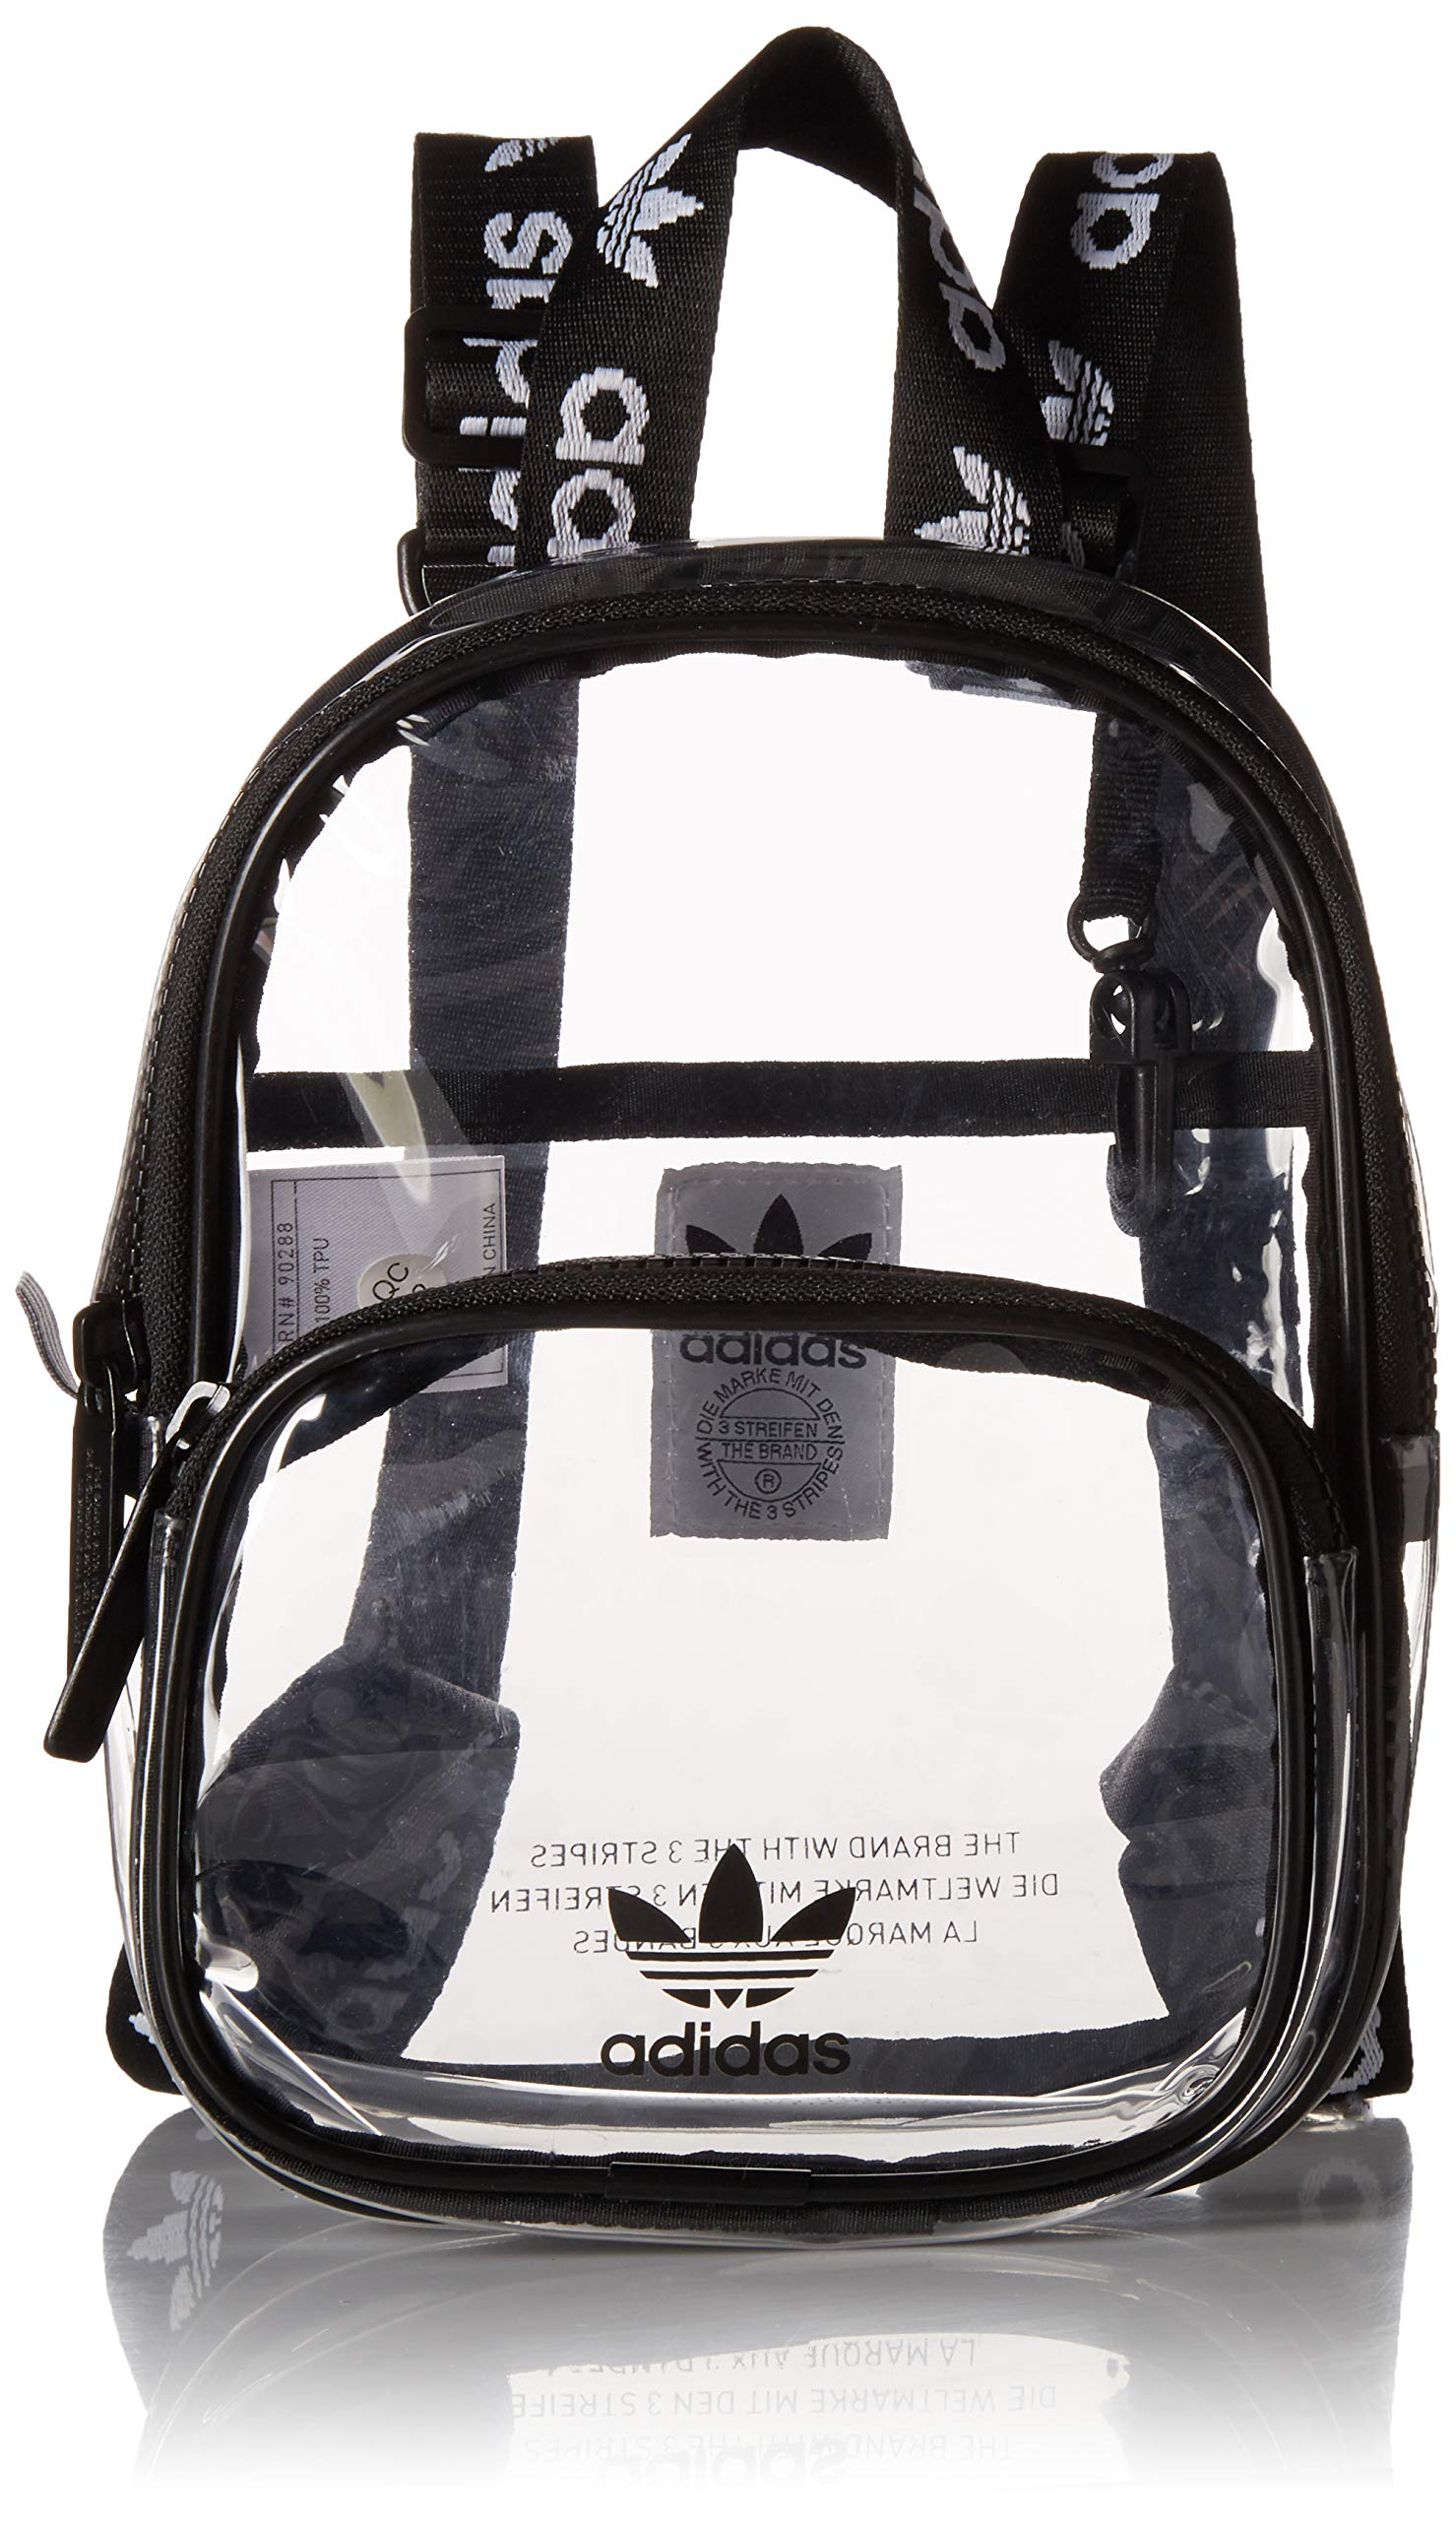 adidas Originals Unisex Clear Mini Backpack, Black, ONE SIZE by adidas